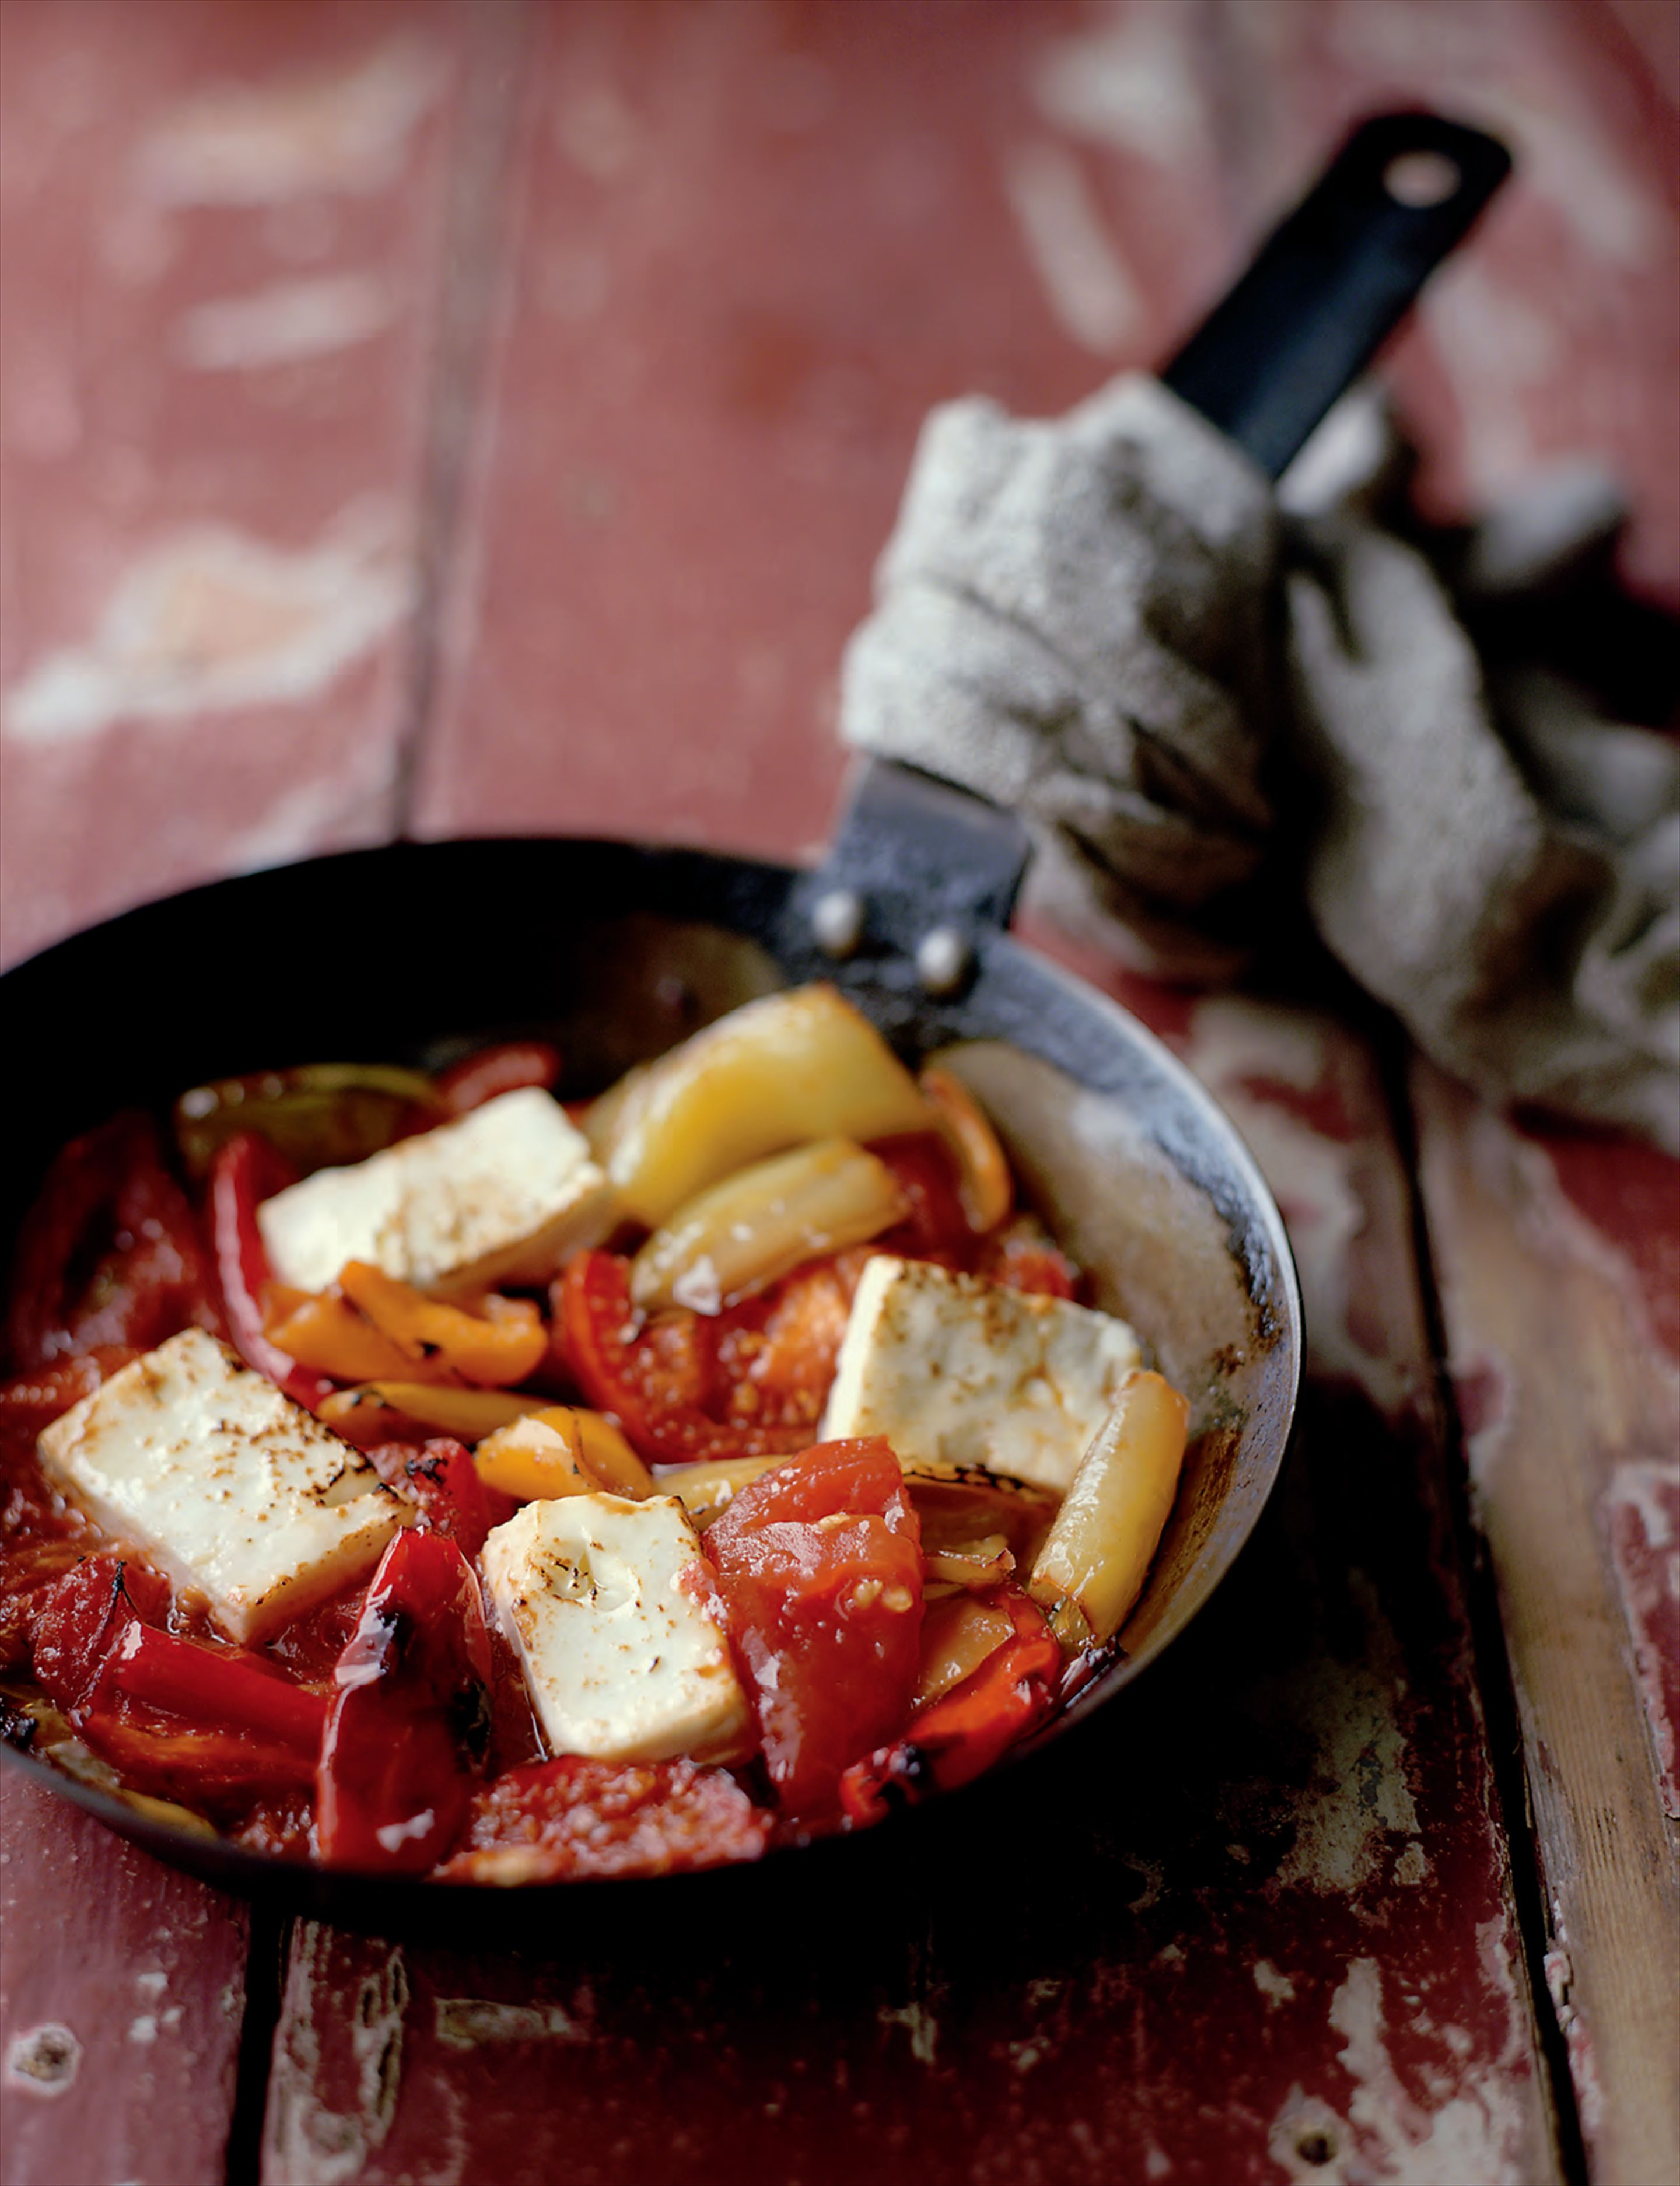 Tomato with feta and hot peppers